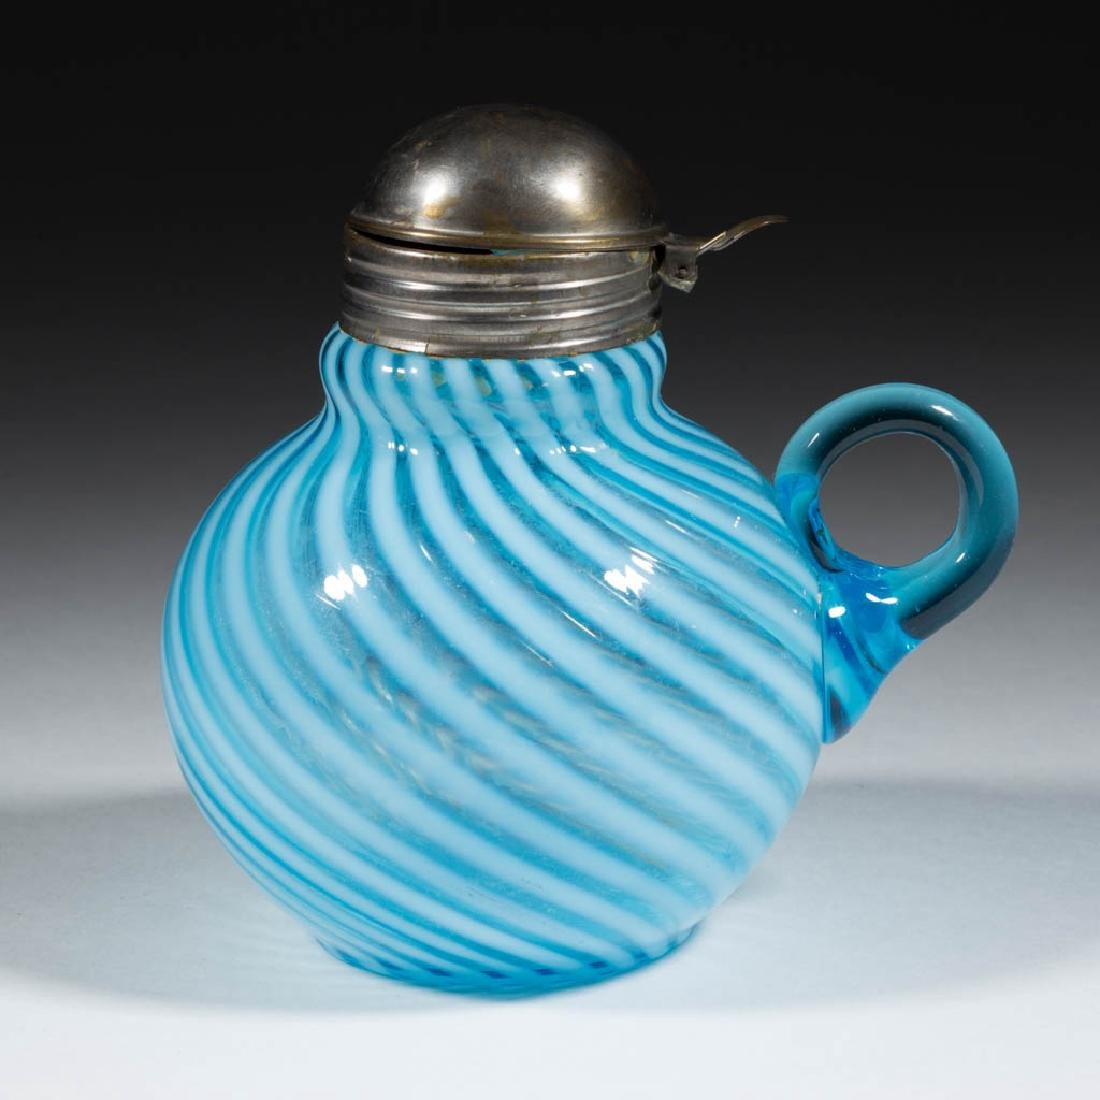 HOBBS' NO. 325 / OPAL SWIRL SYRUP PITCHER